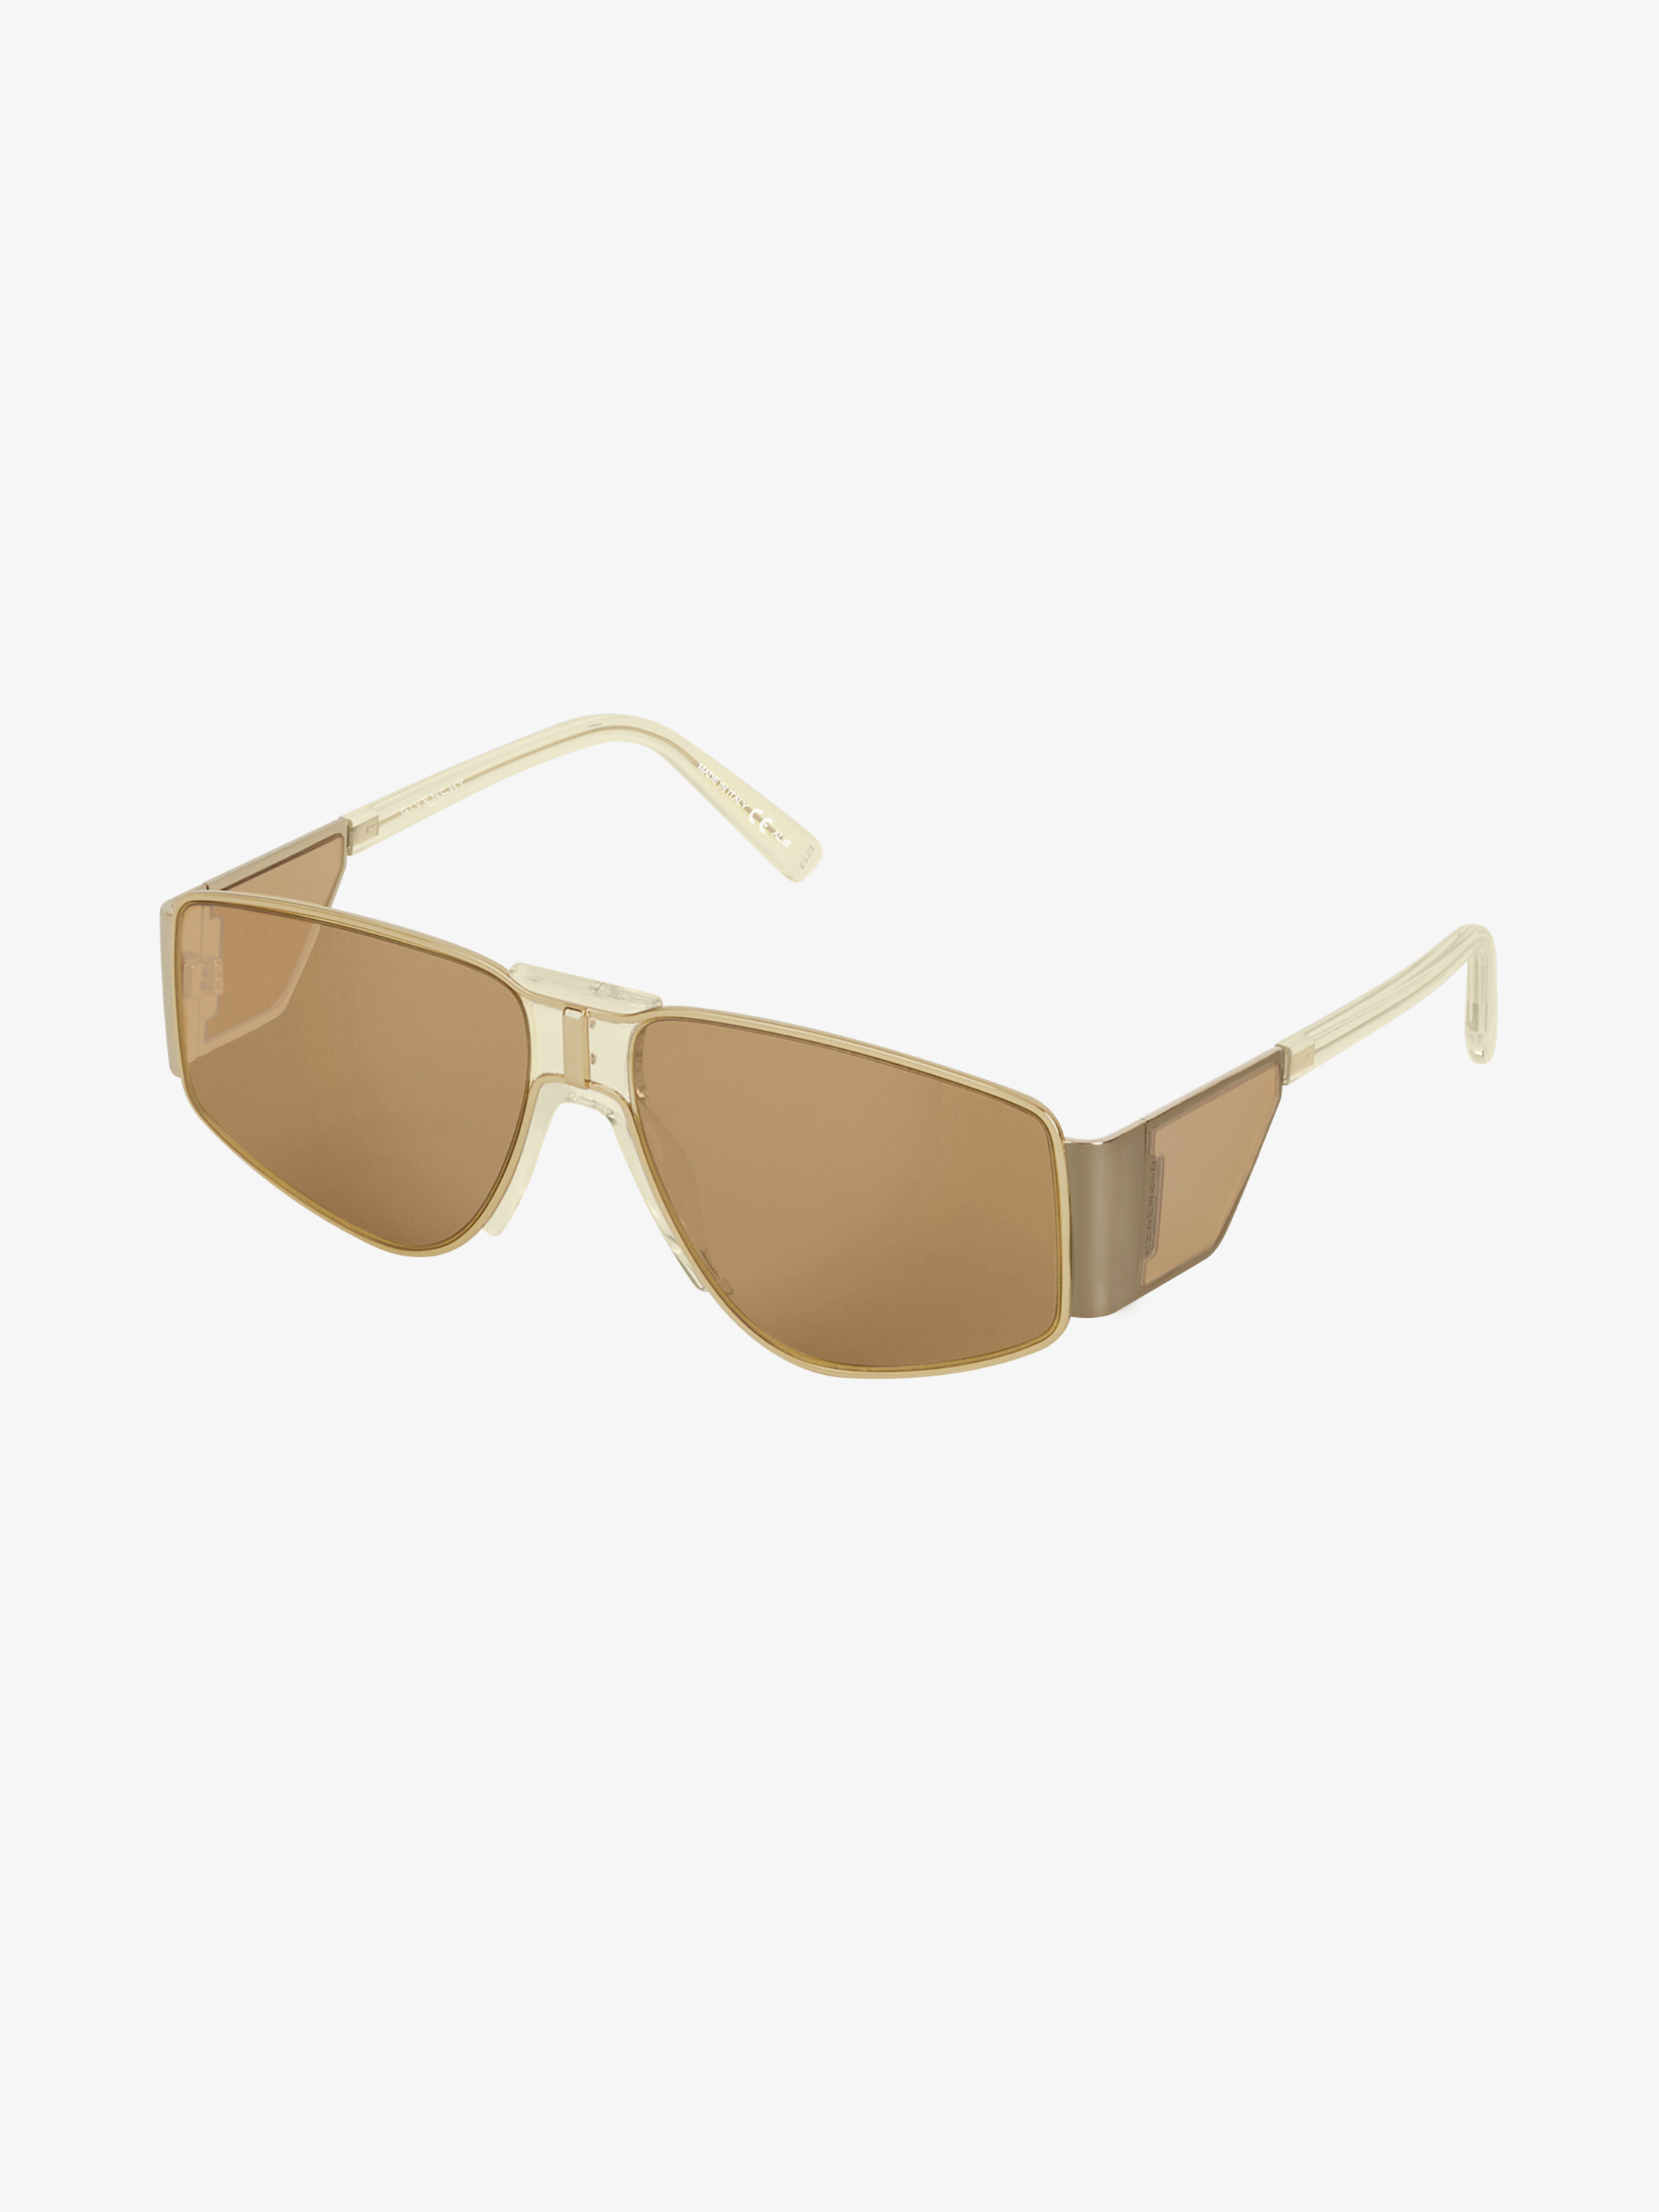 GV Vision unisex sunglasses in metal